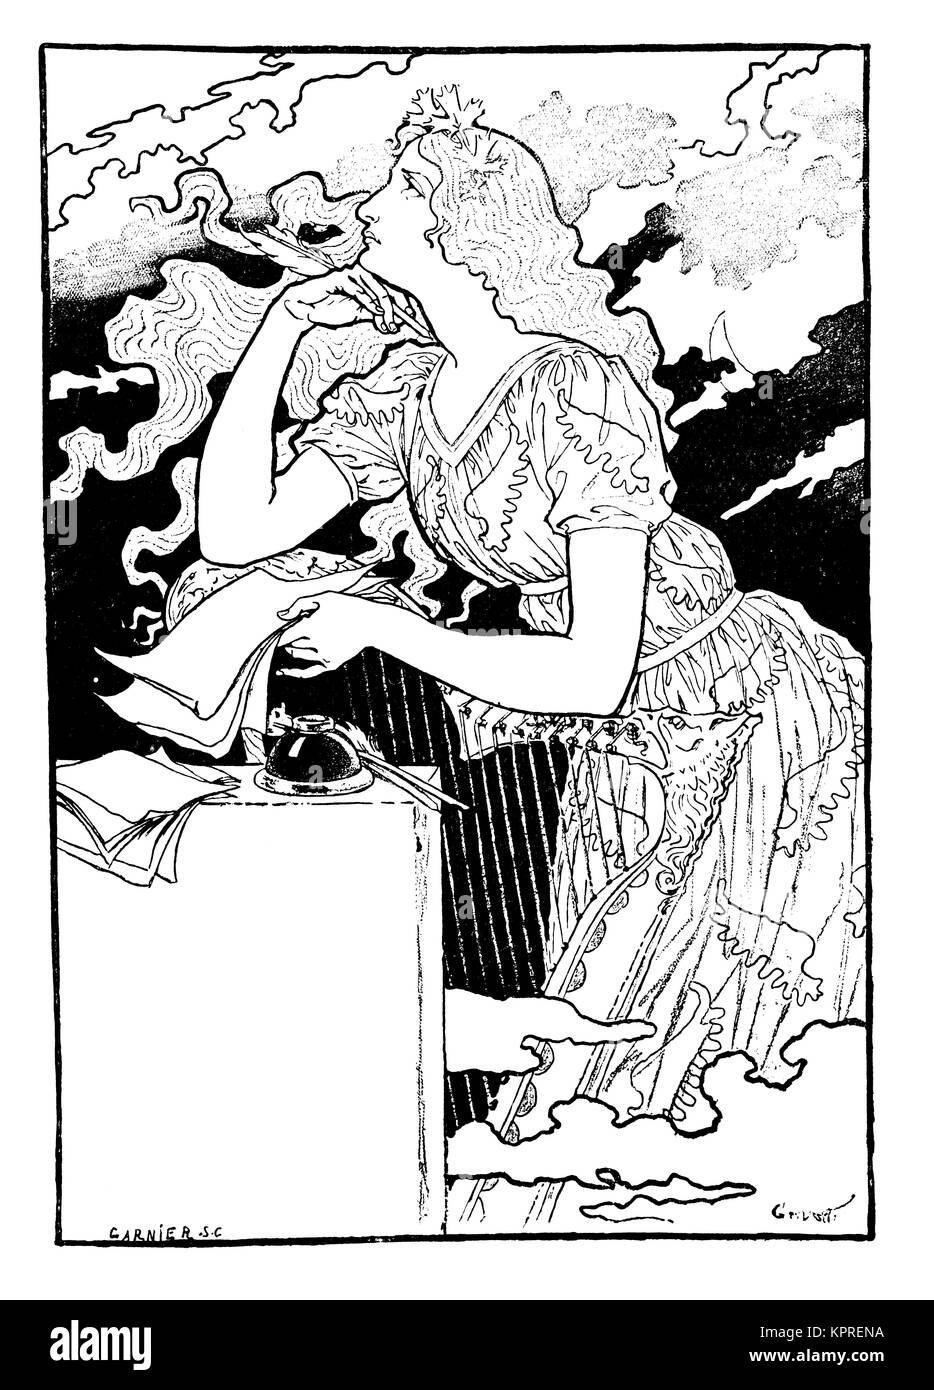 1894 woman writing poster design by artist Eugene Grasset from Volume 4 of The Studio Magazine - Stock Image